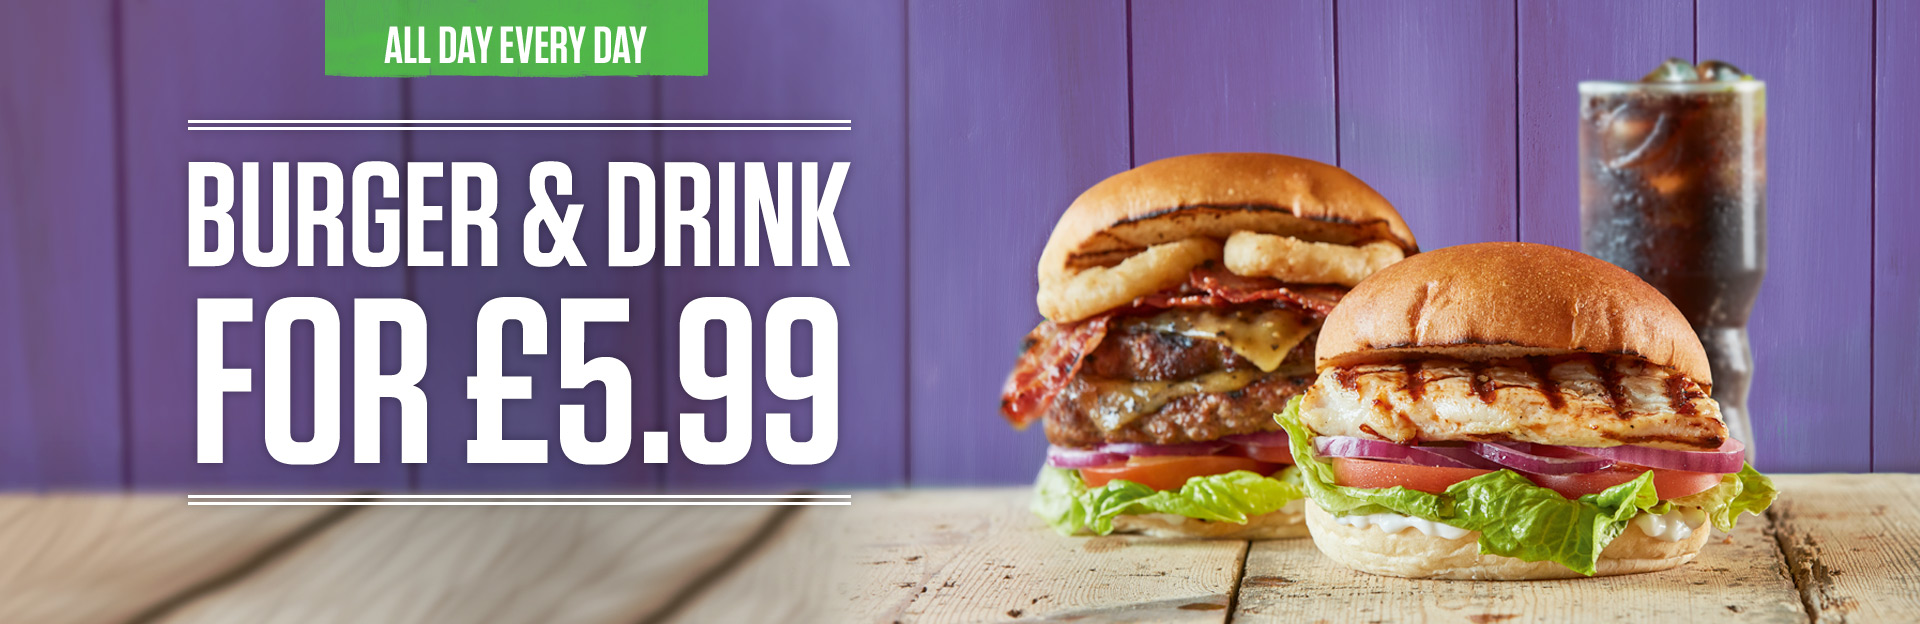 Burger and Drink Deal at The Blackberry Jack